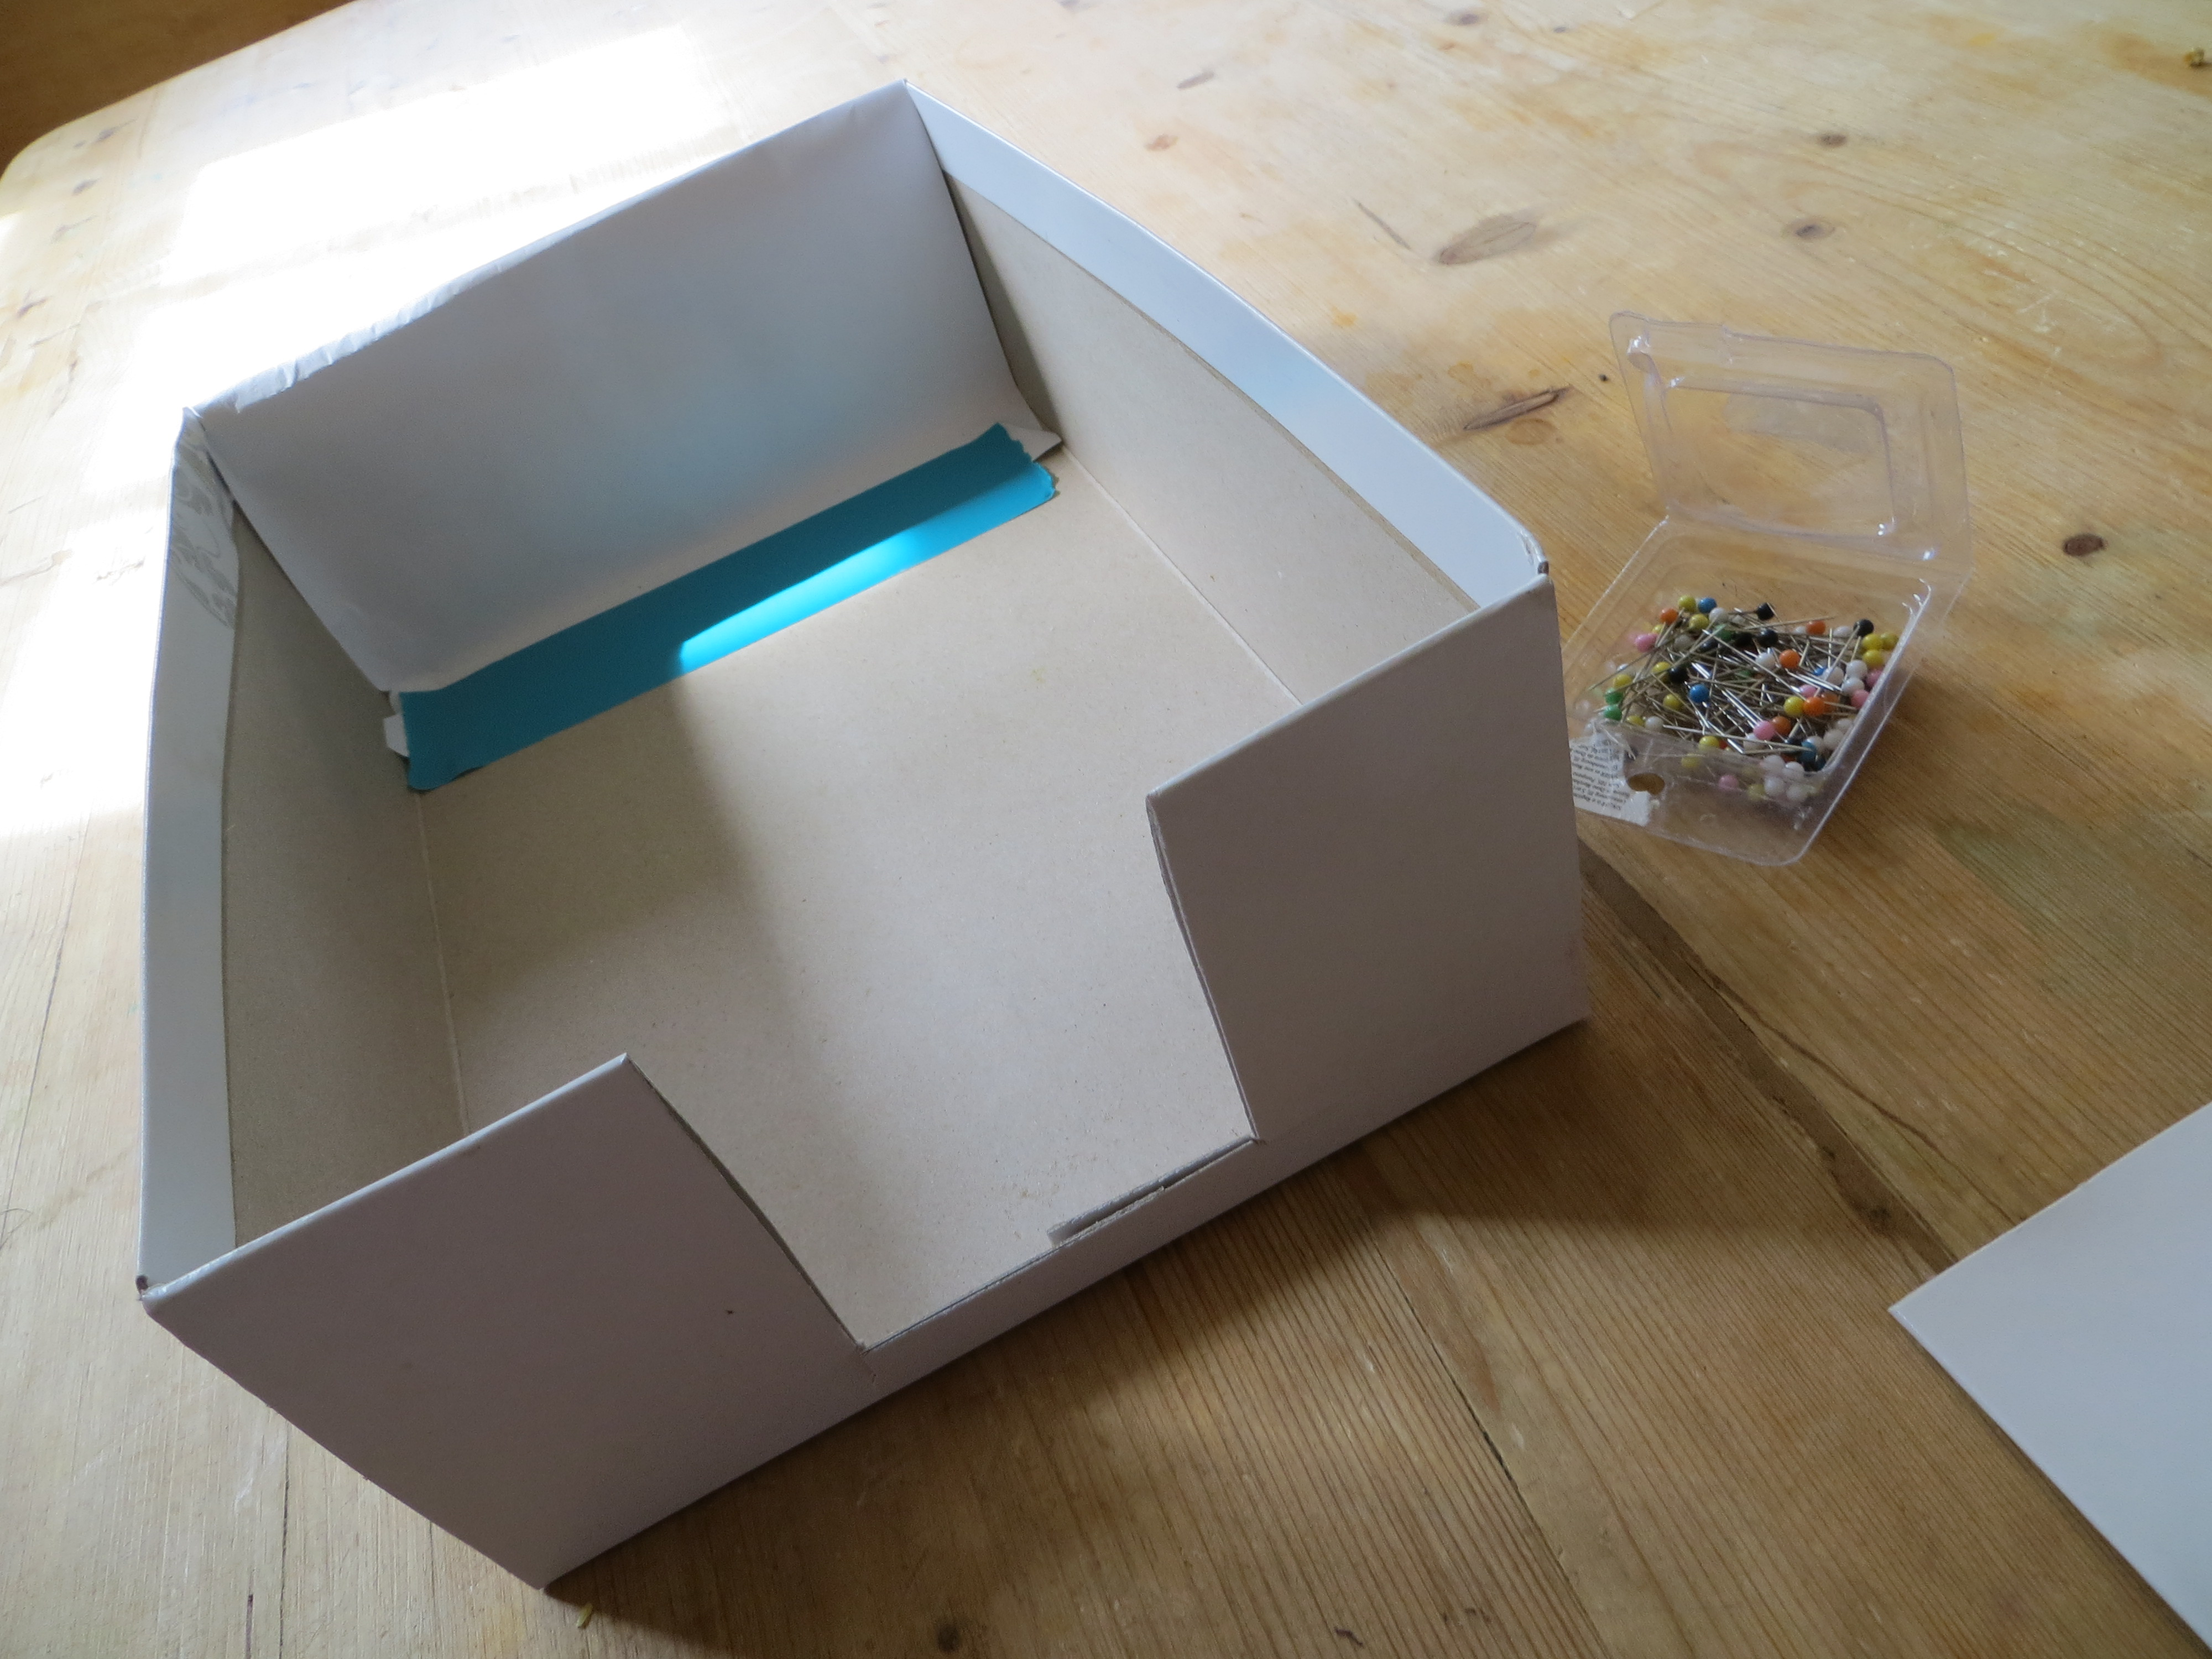 How To Make A Diy Shoe Box For Eclipse